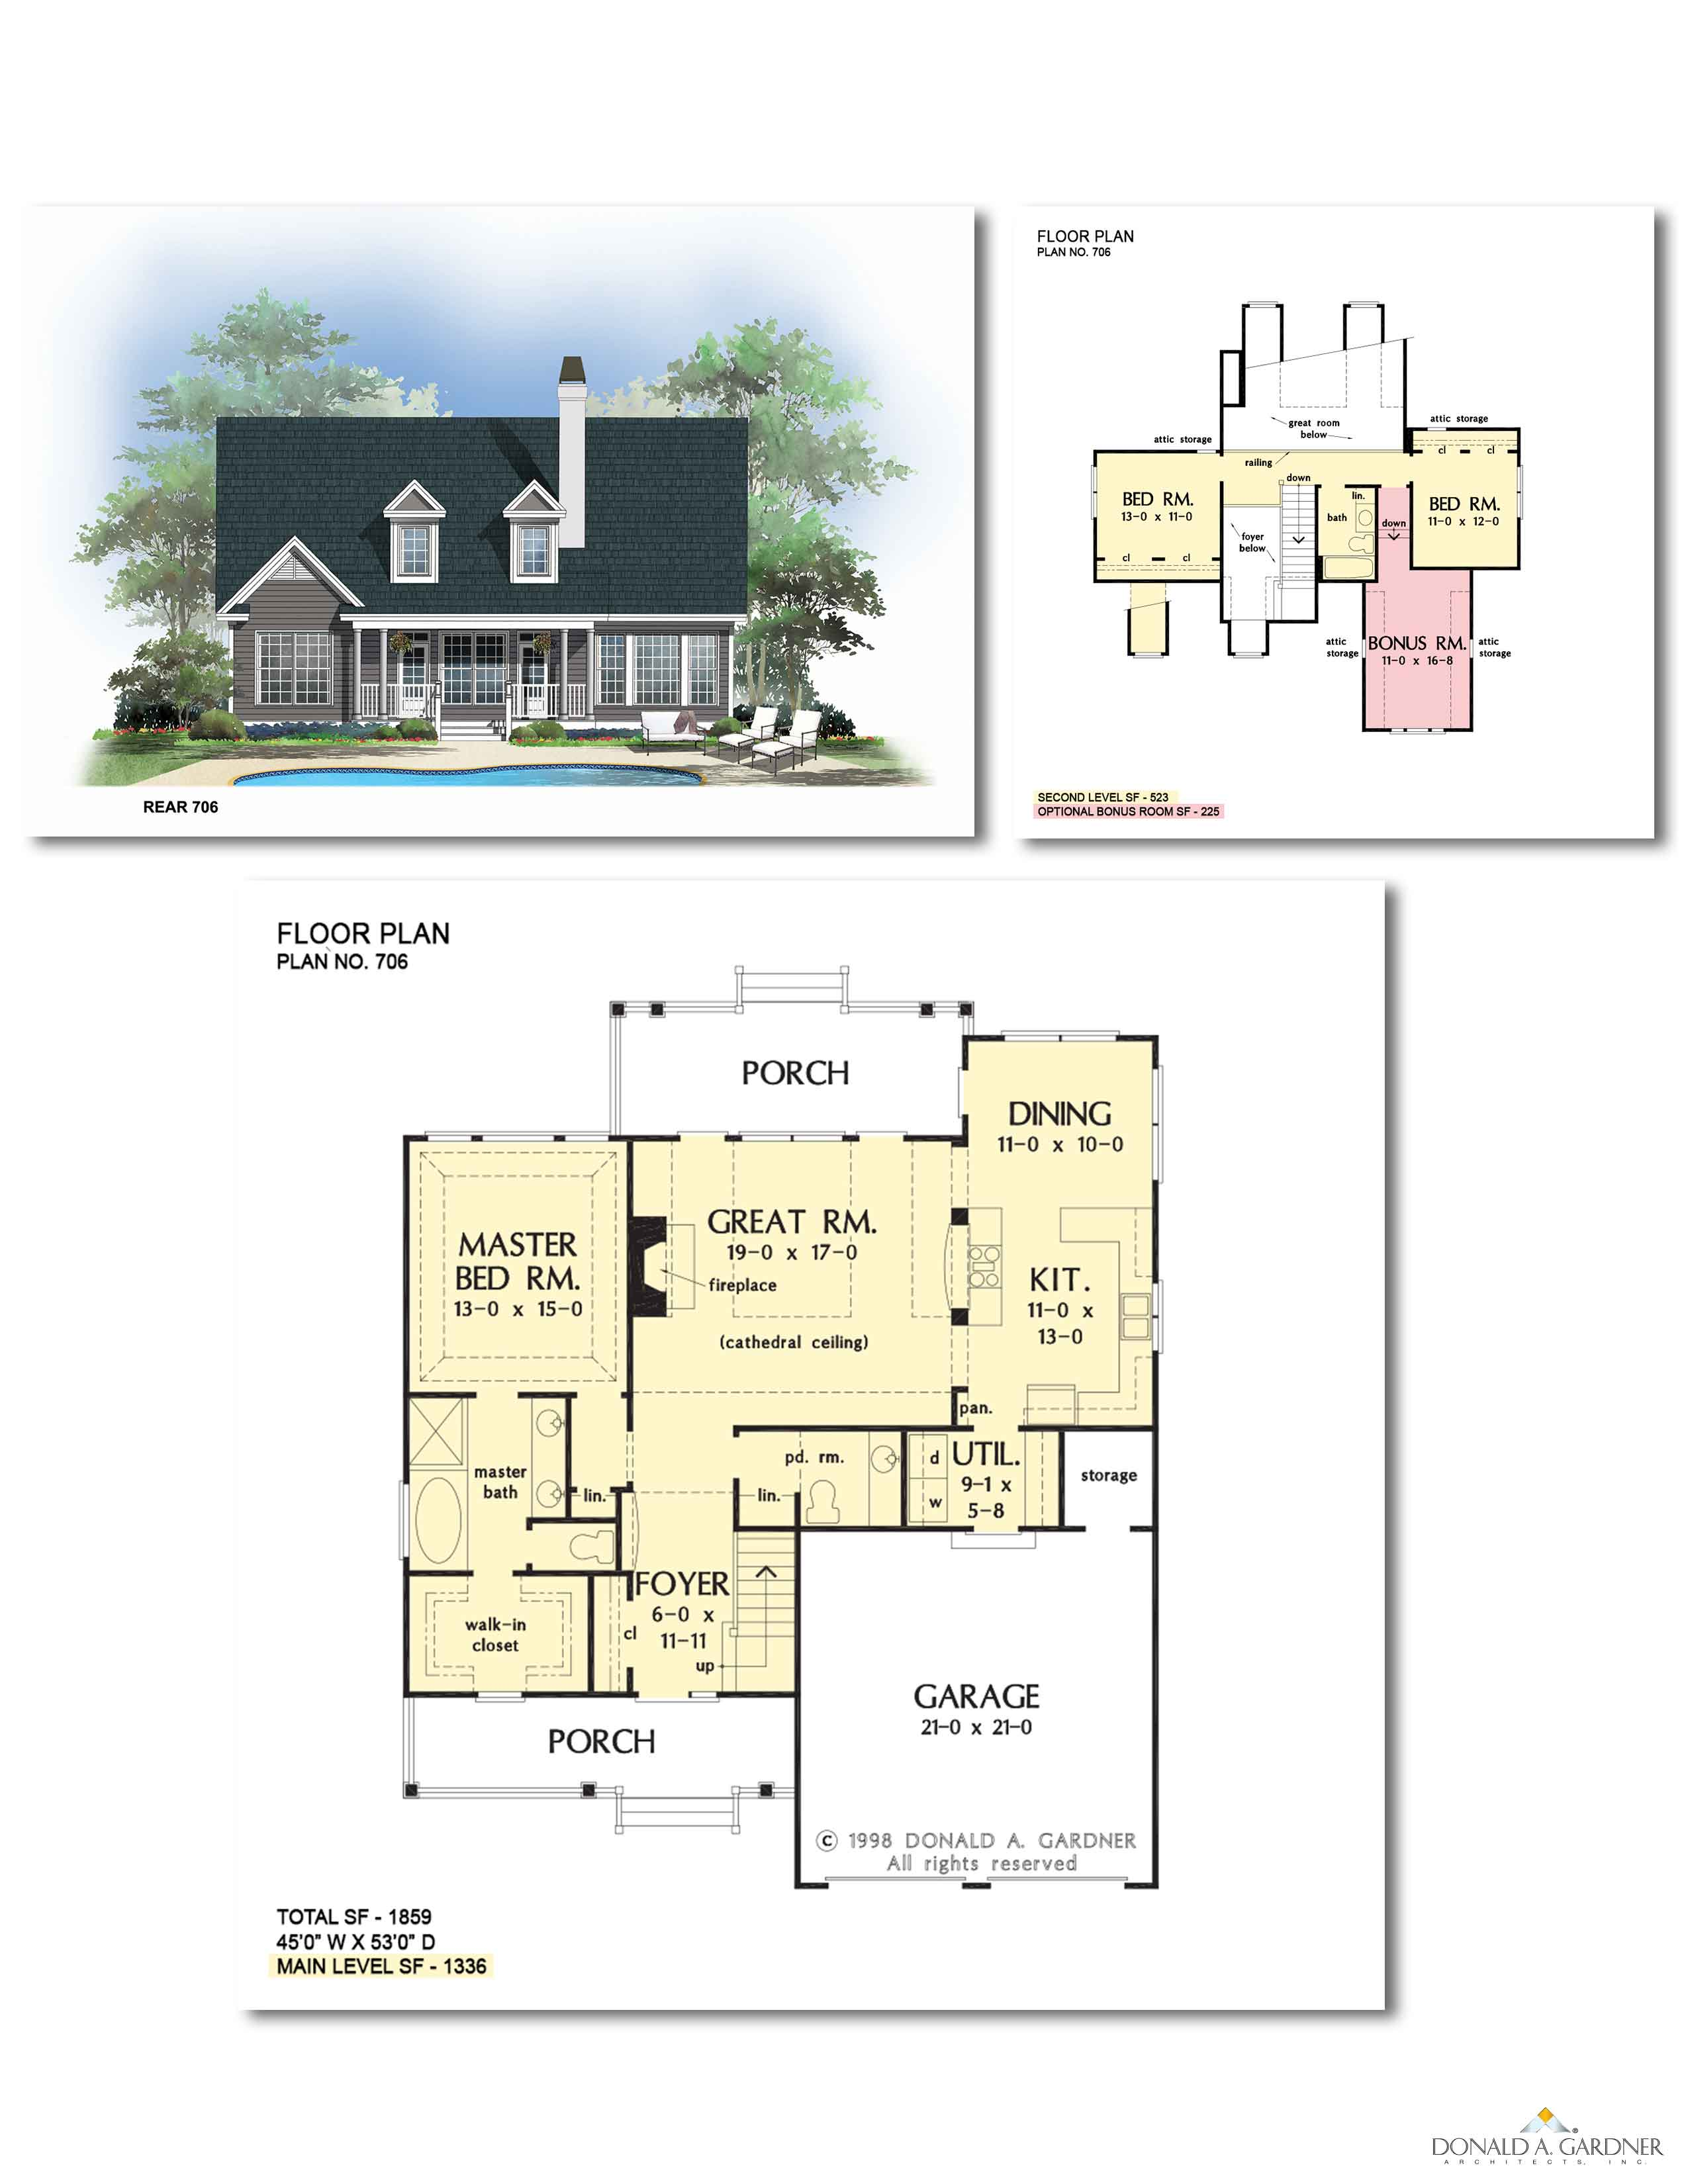 House Plan 706 - The Courtney